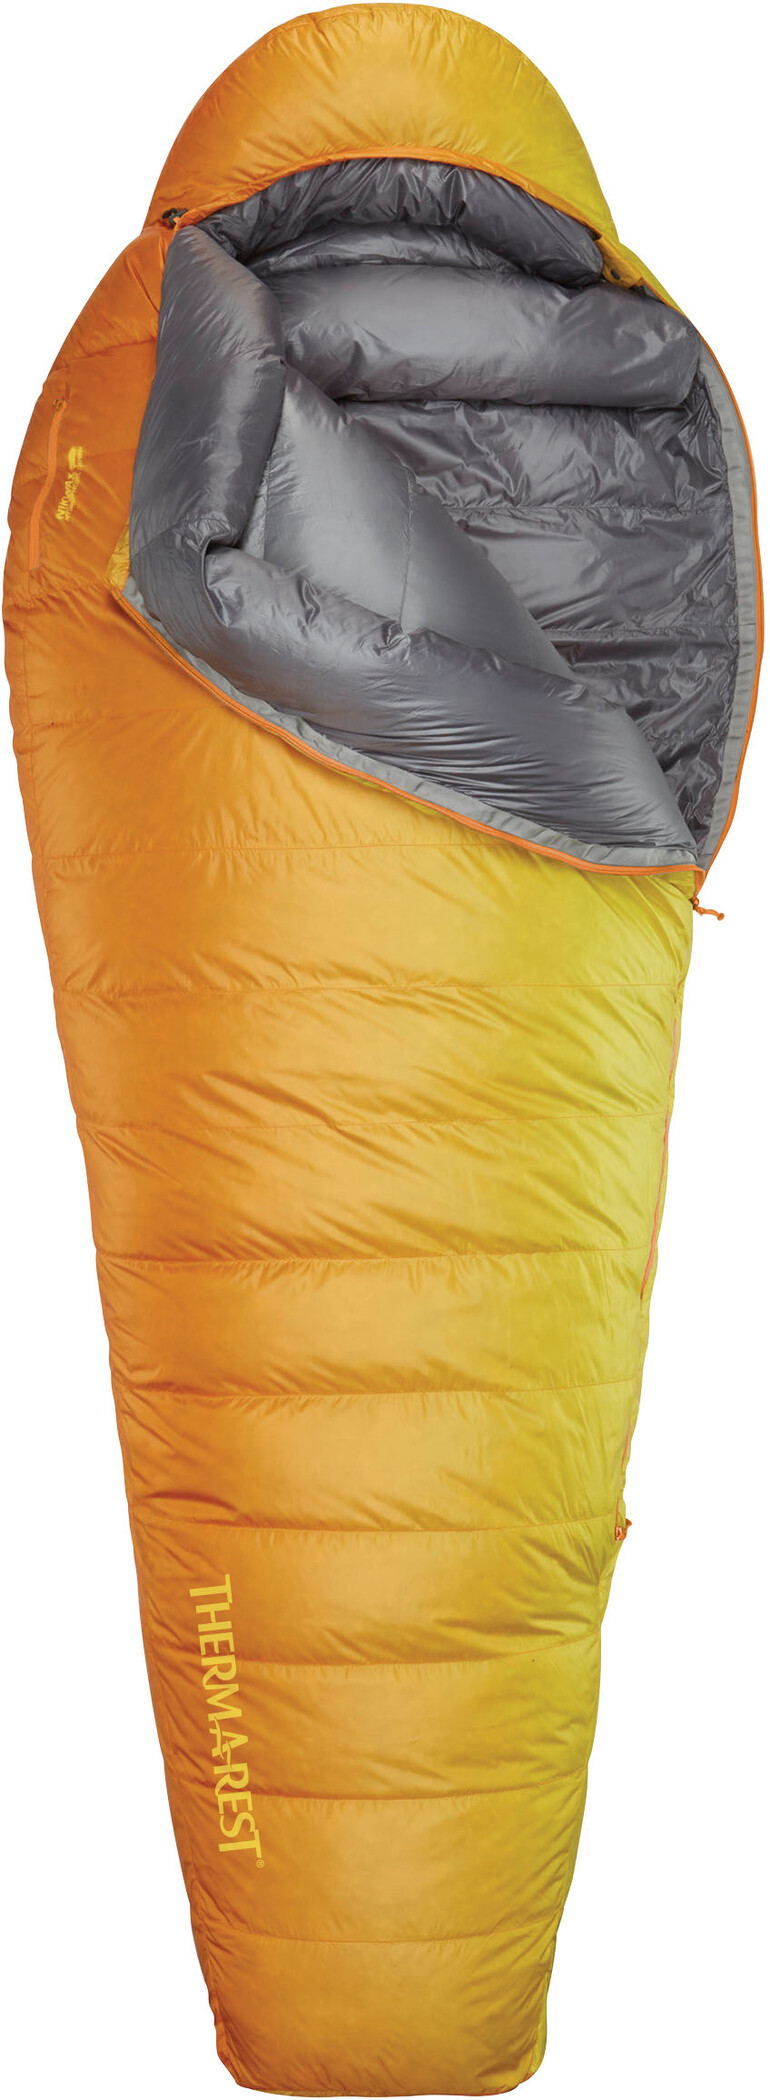 Therm-a-Rest Oberon 0 Sleeping Bag long, orange (2019) | Misc. Transportation and Storage